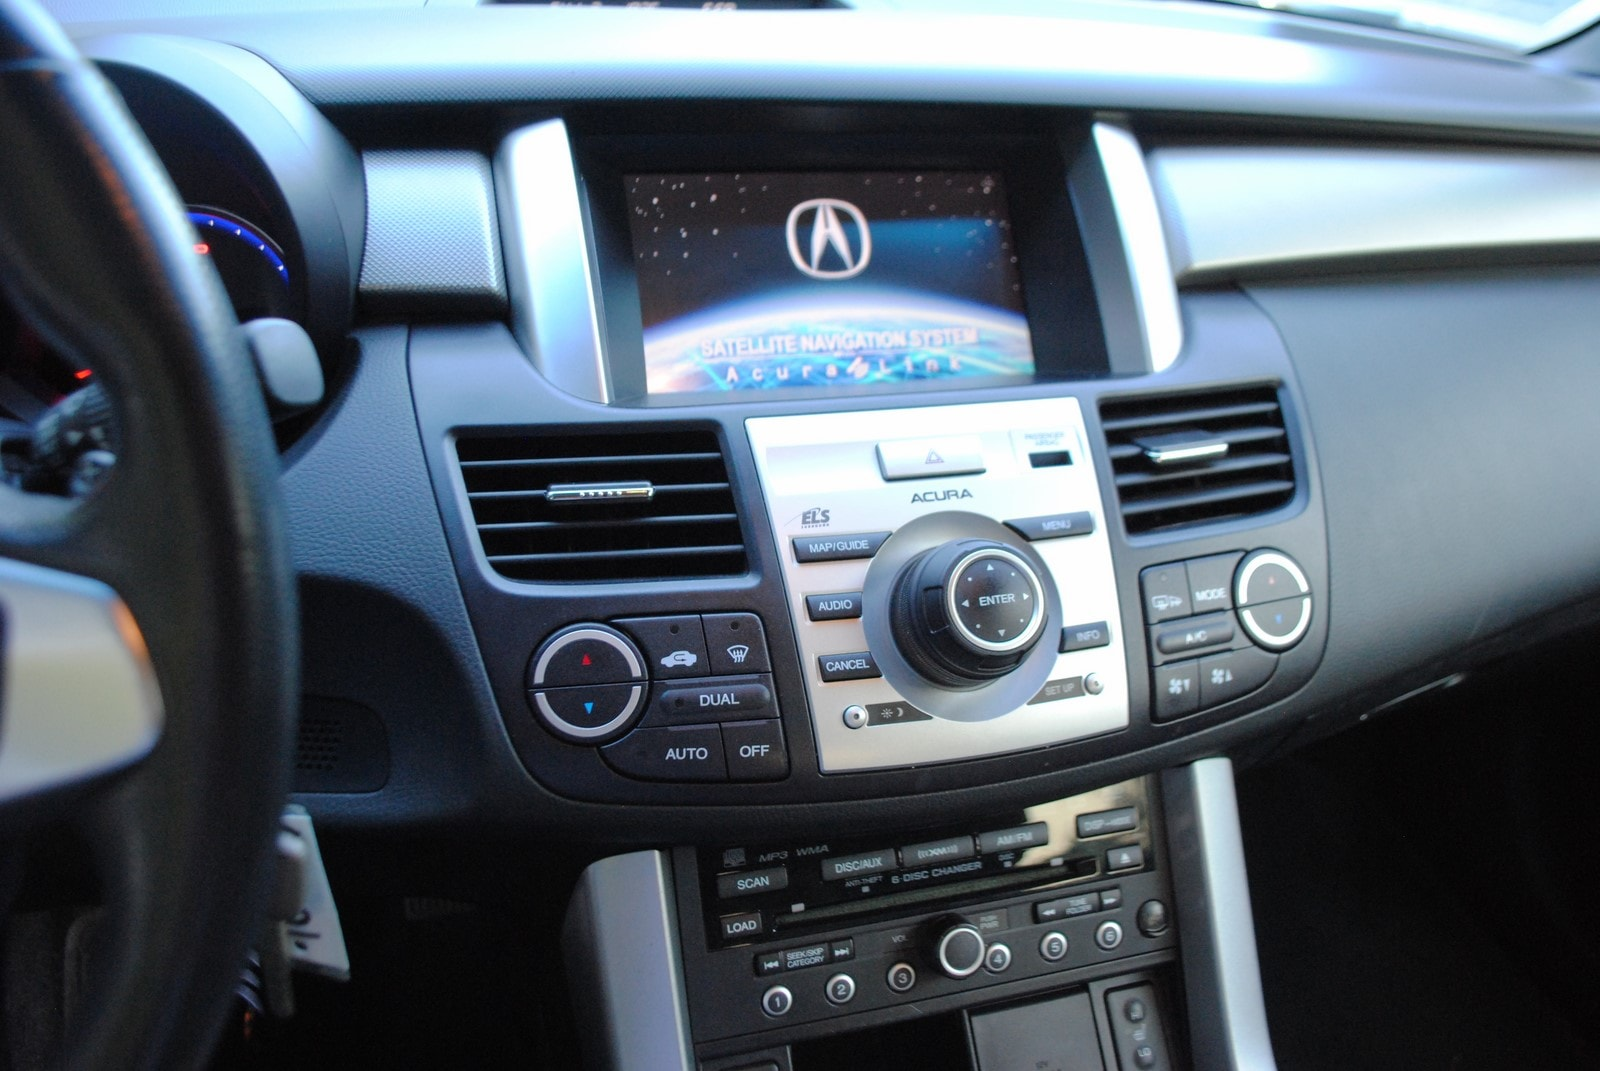 Used 2008 Acura Rdx For Sale At Ramsey Corp Vin 5j8tb18538a016438rhramseycorp: 2007 Acura Rdx Radio Code Entry At Gmaili.net